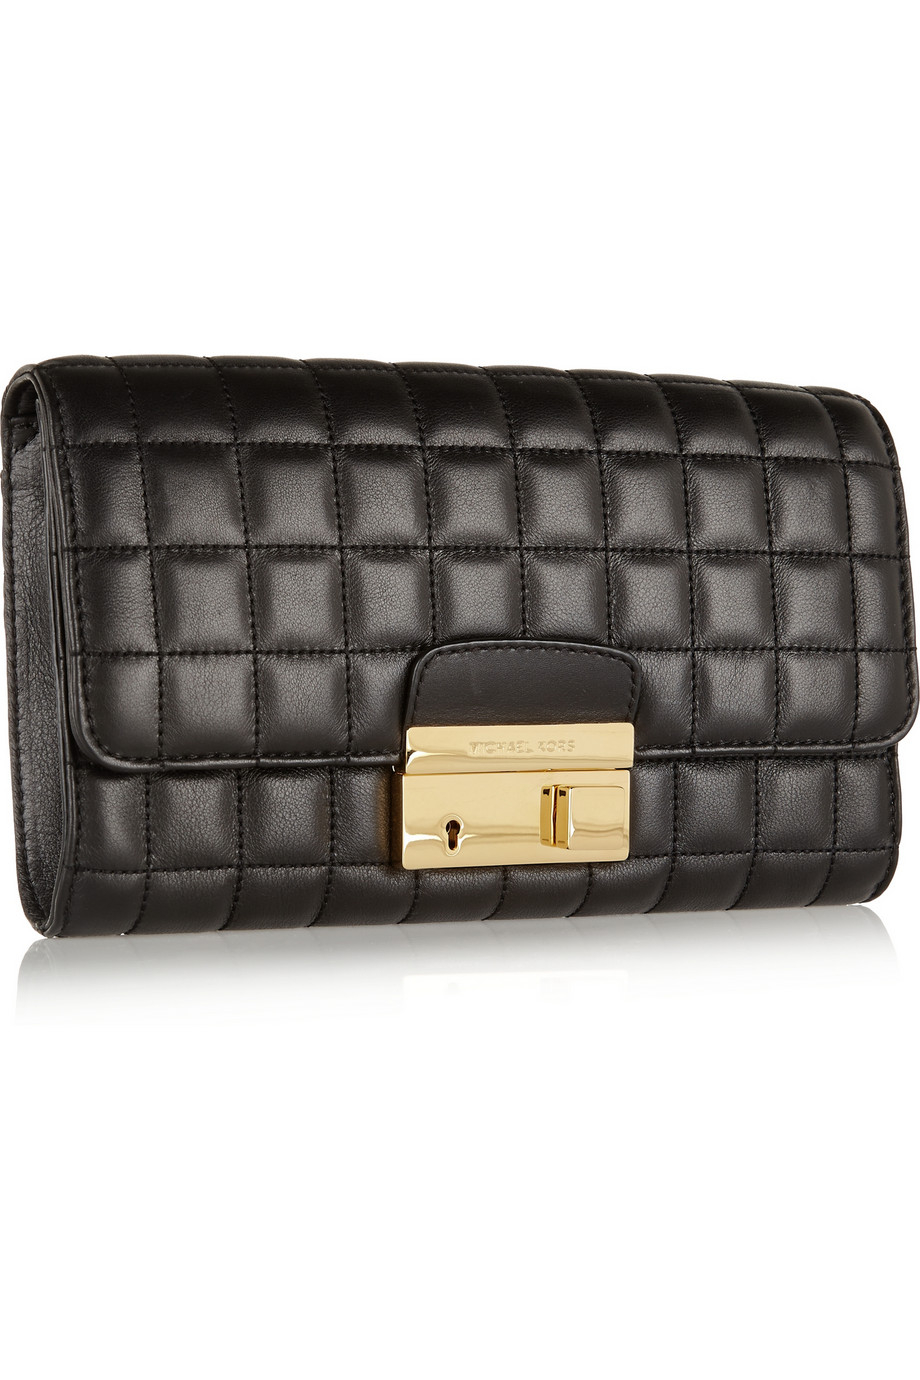 Michael kors Gia Quilted Leather Clutch in Black | Lyst : quilted leather clutch - Adamdwight.com